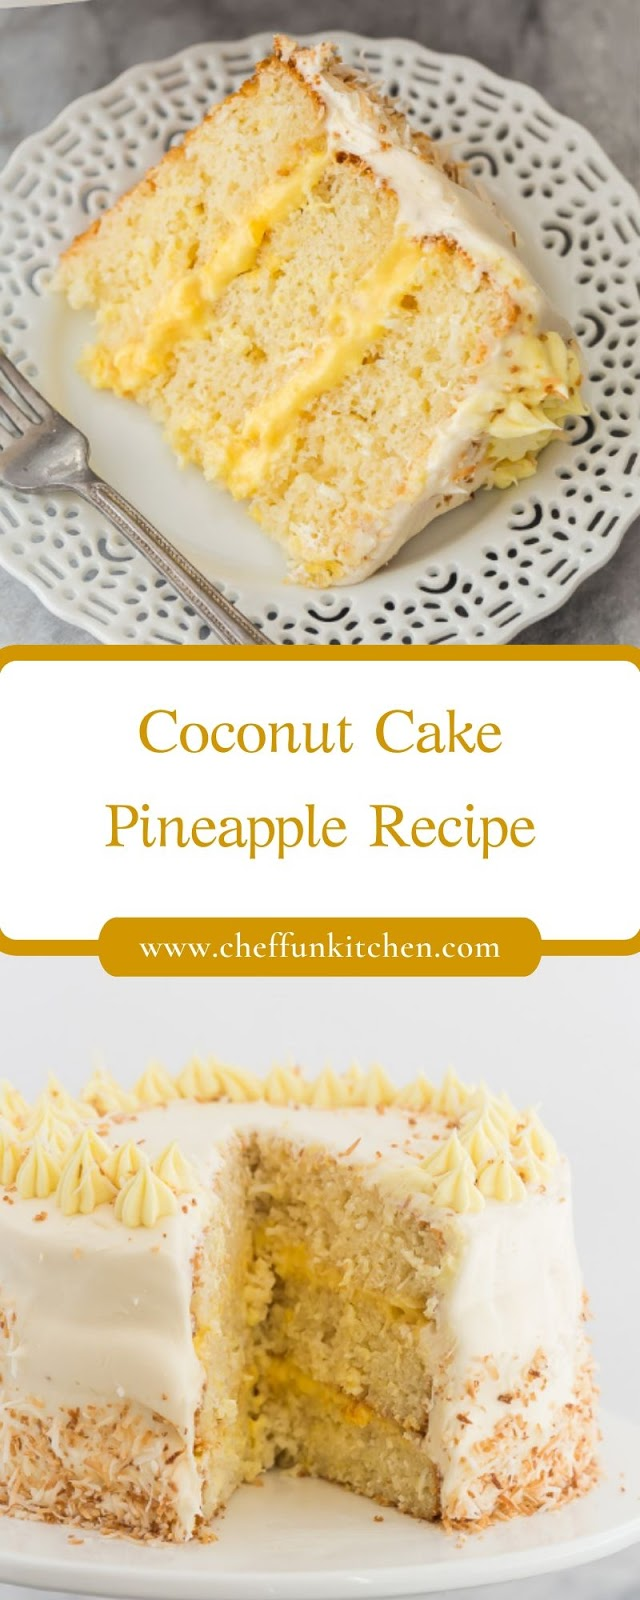 Coconut Cake Pineapple Recipe